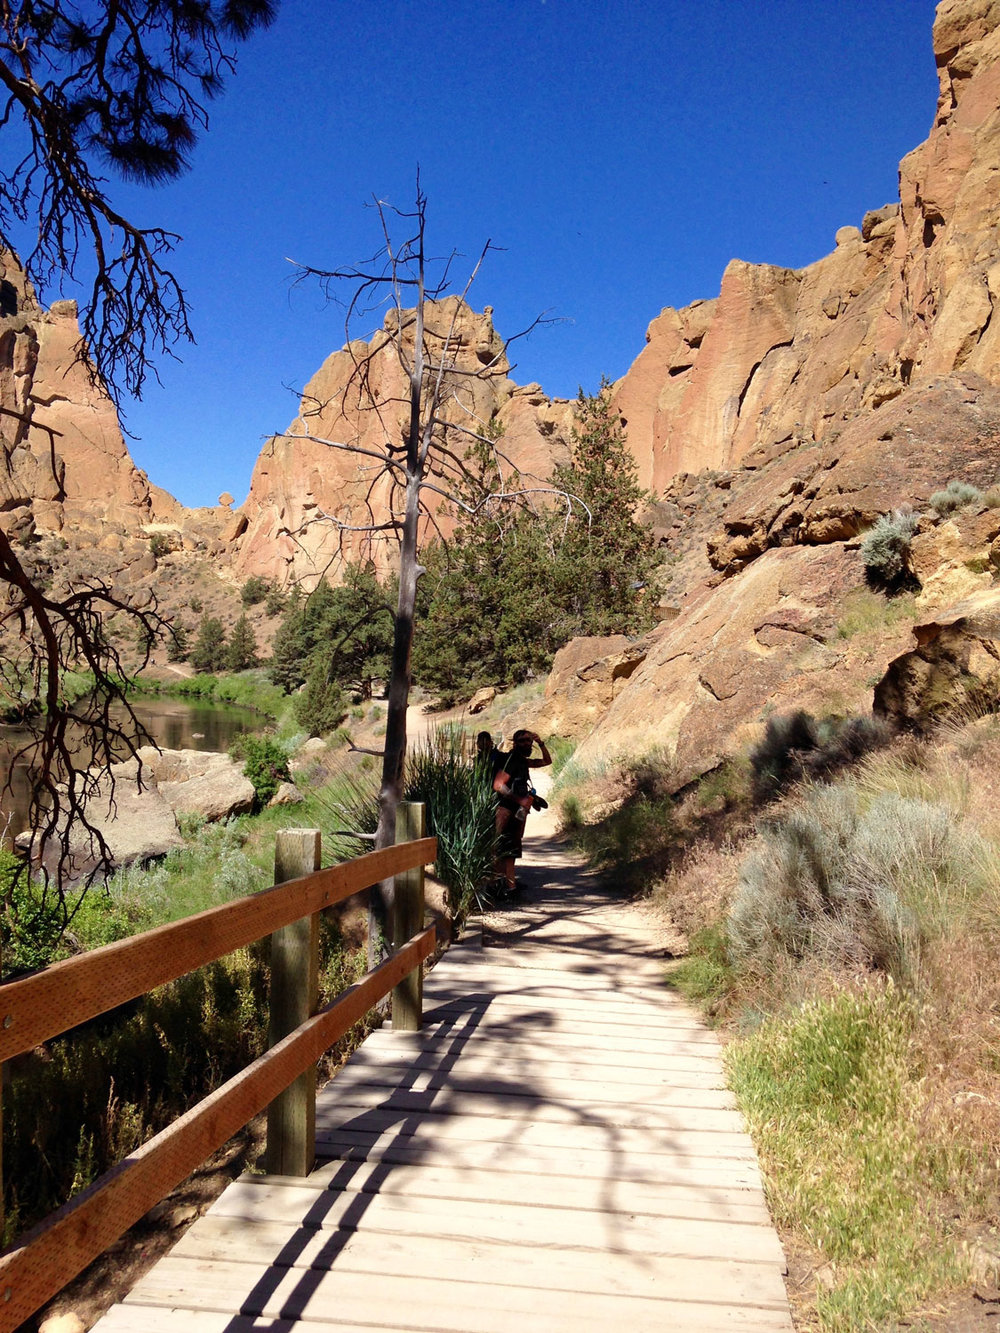 You'll cross over several wood bridges on the River Trail at Smith Rock State Park.